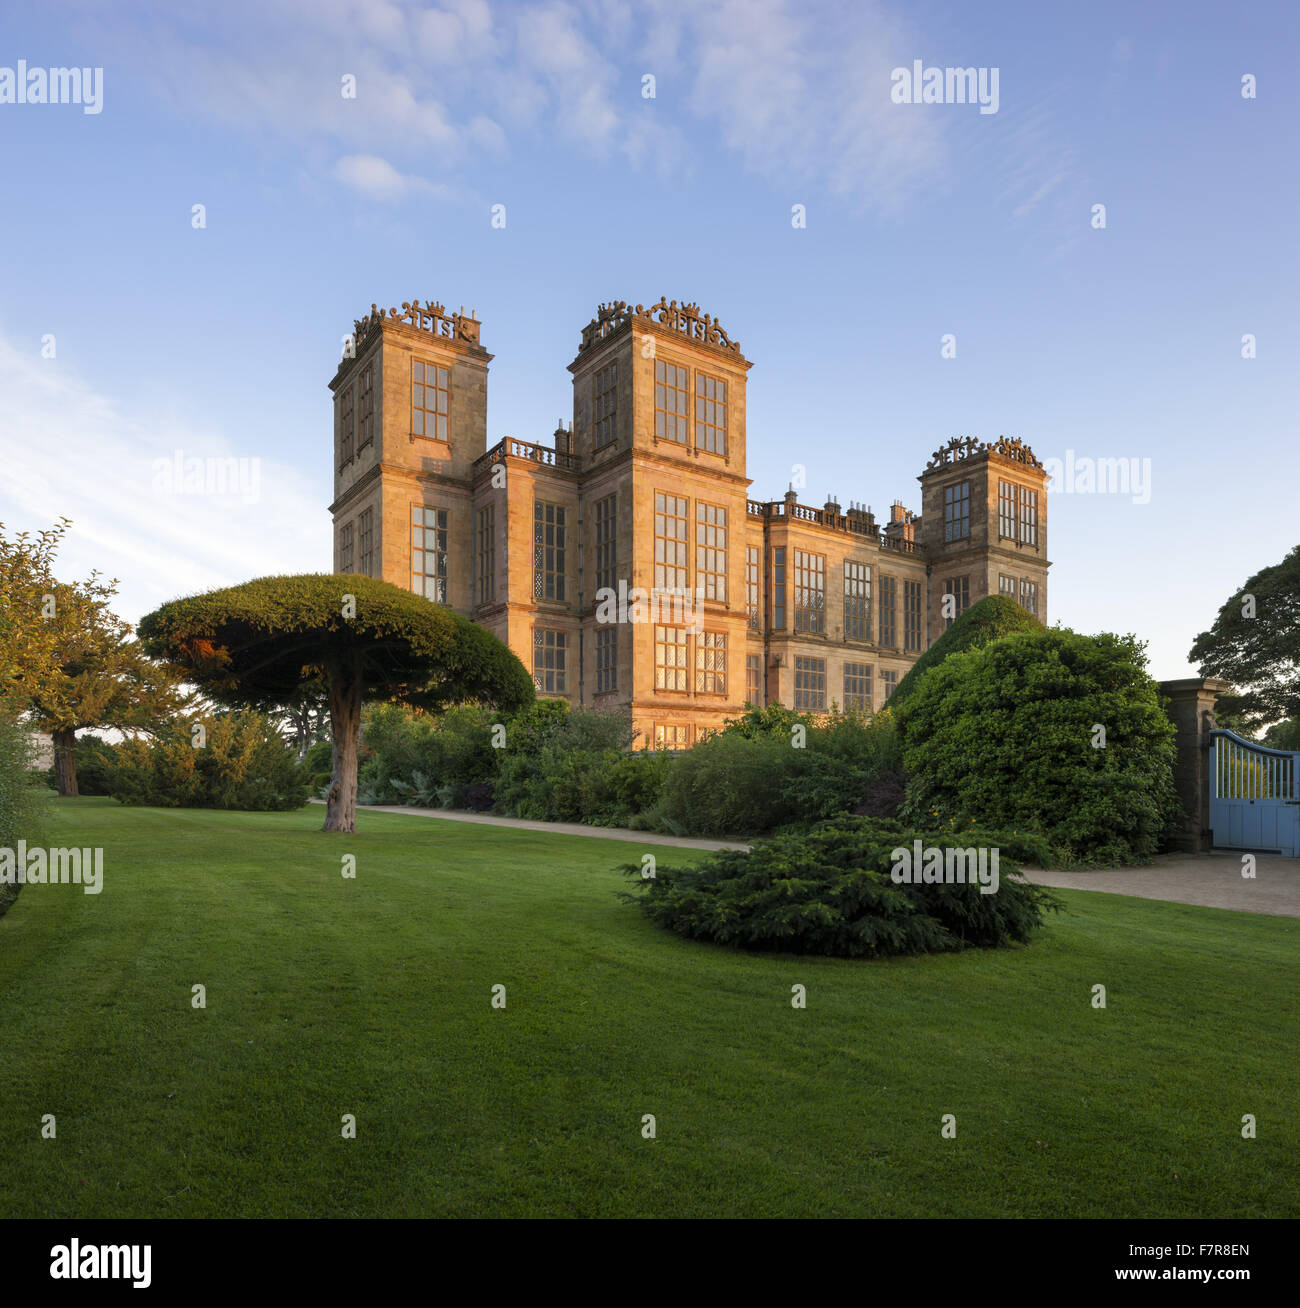 Hardwick Hall, Derbyshire. The Hardwick Estate is made up of stunning houses and beautiful landscapes. - Stock Image